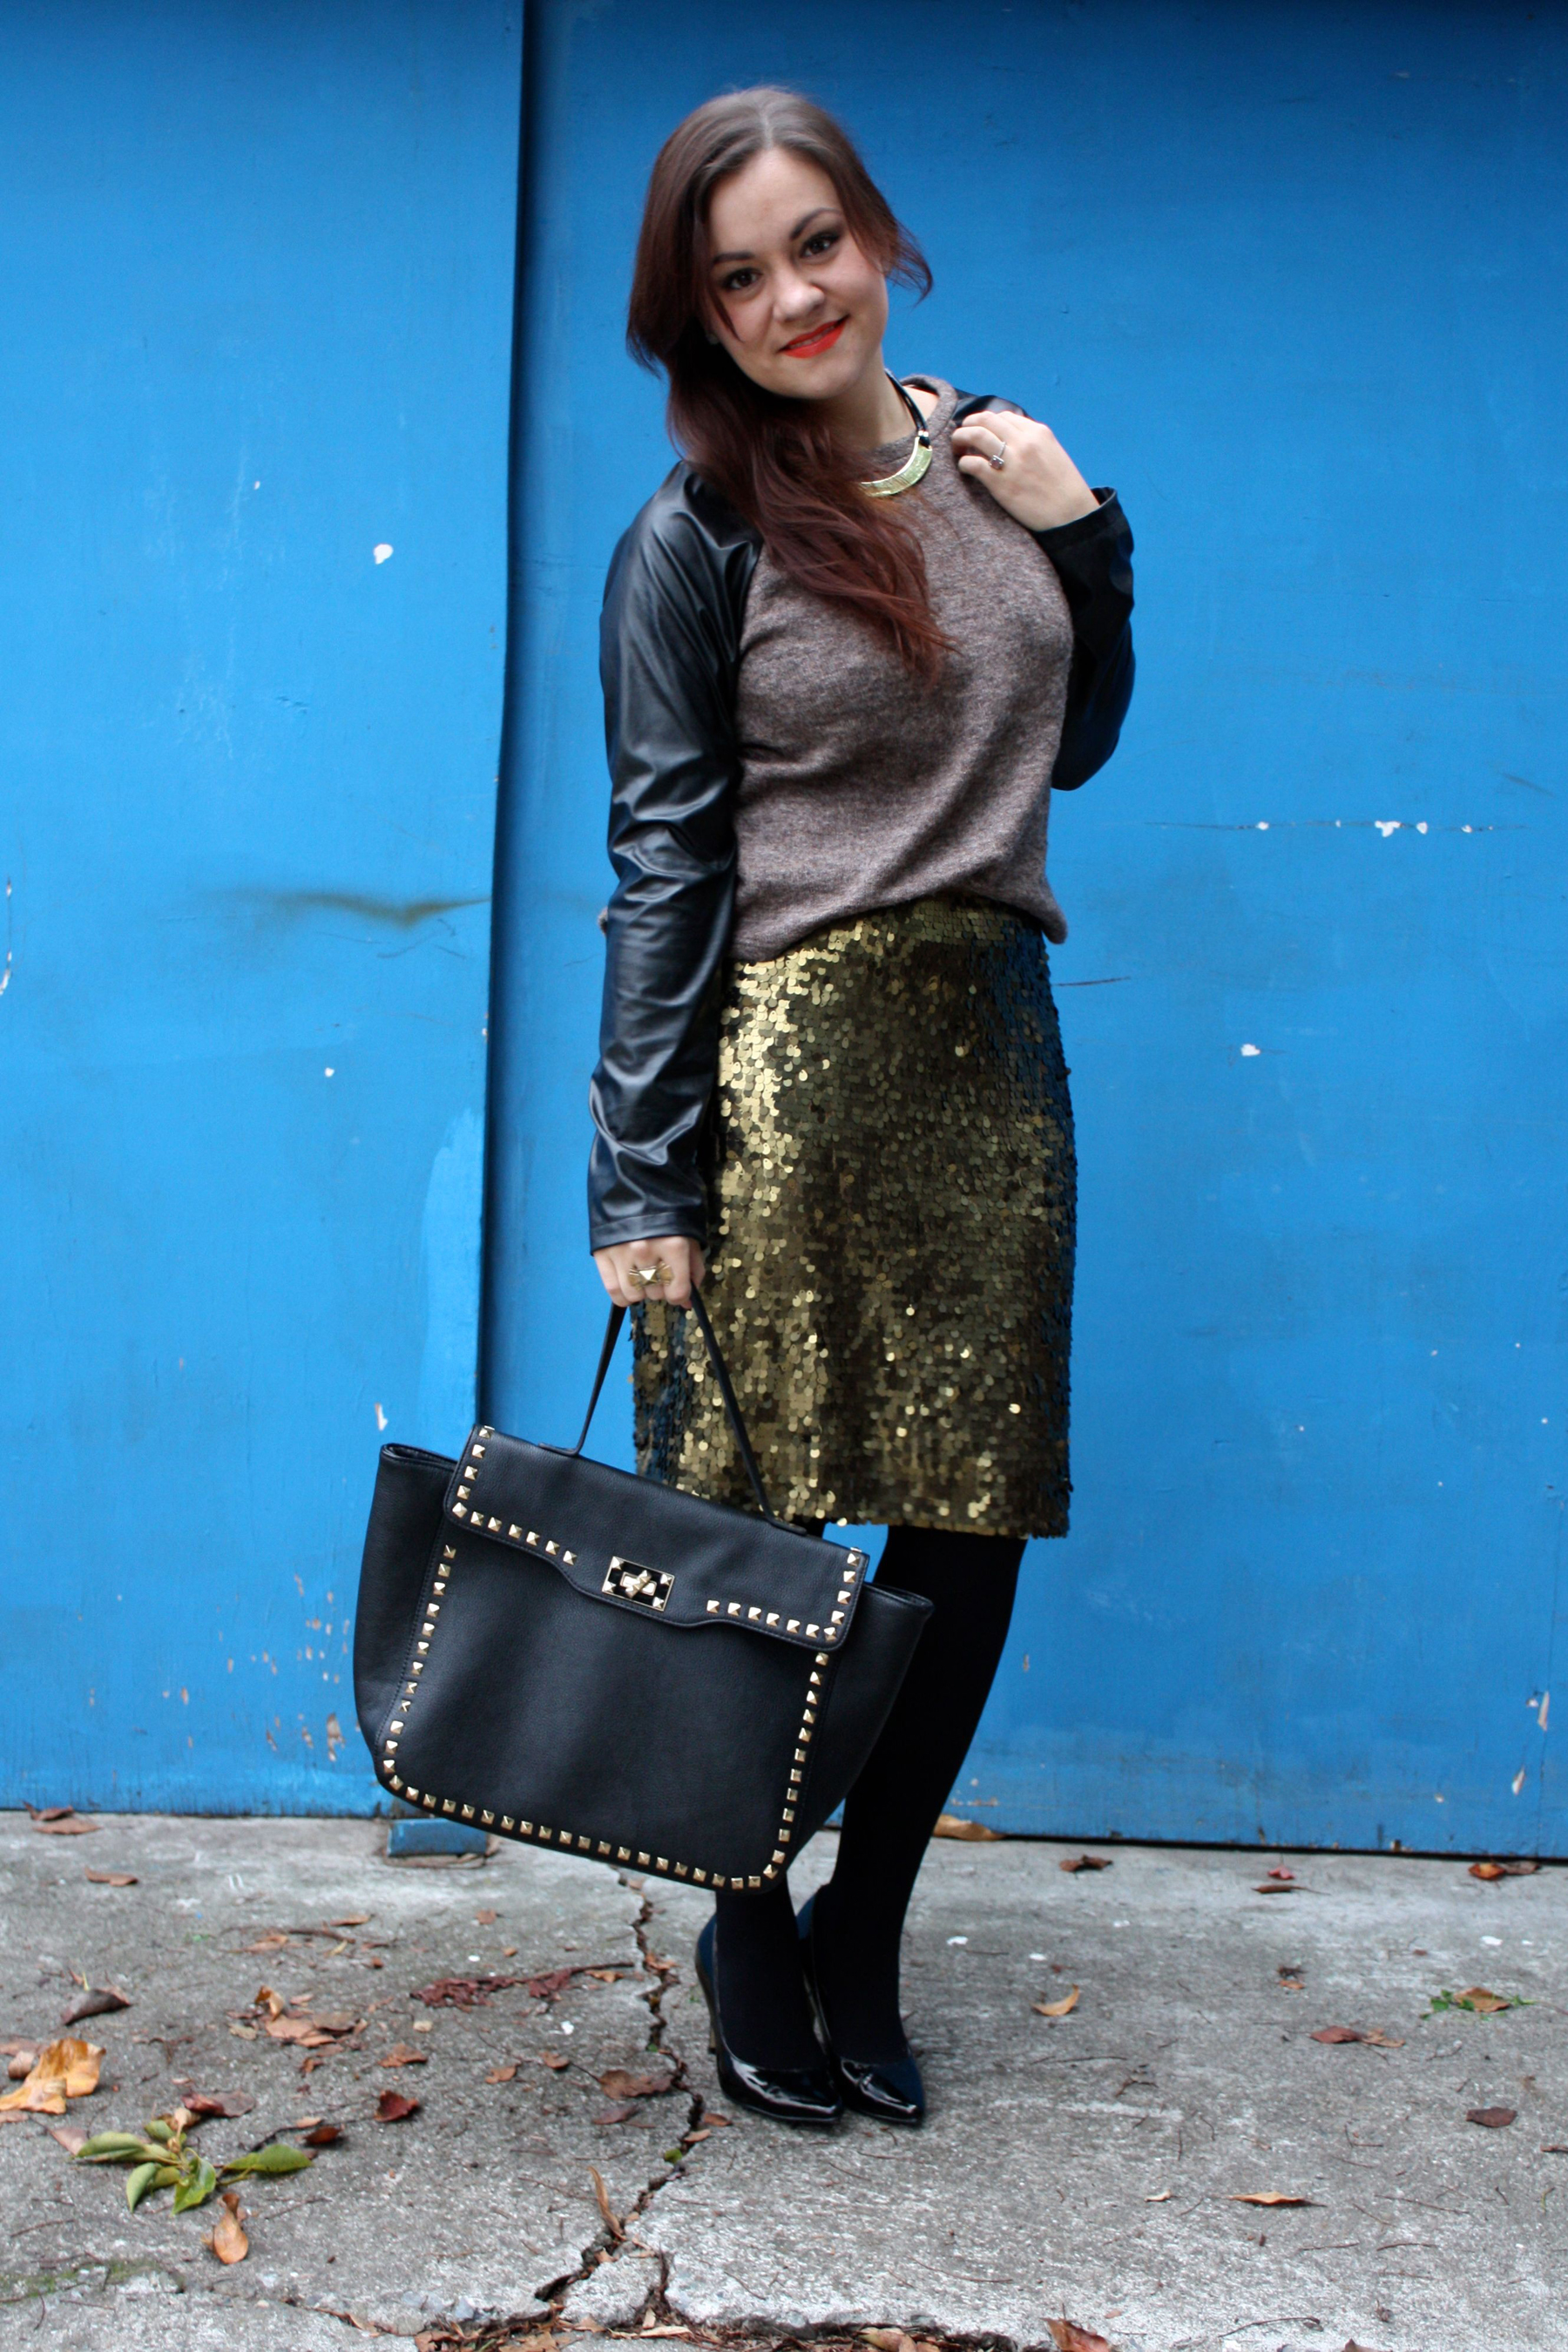 sequin pencil skirt - leather sleeve raglan sweater - studded trim tote - tights - ankle boots04